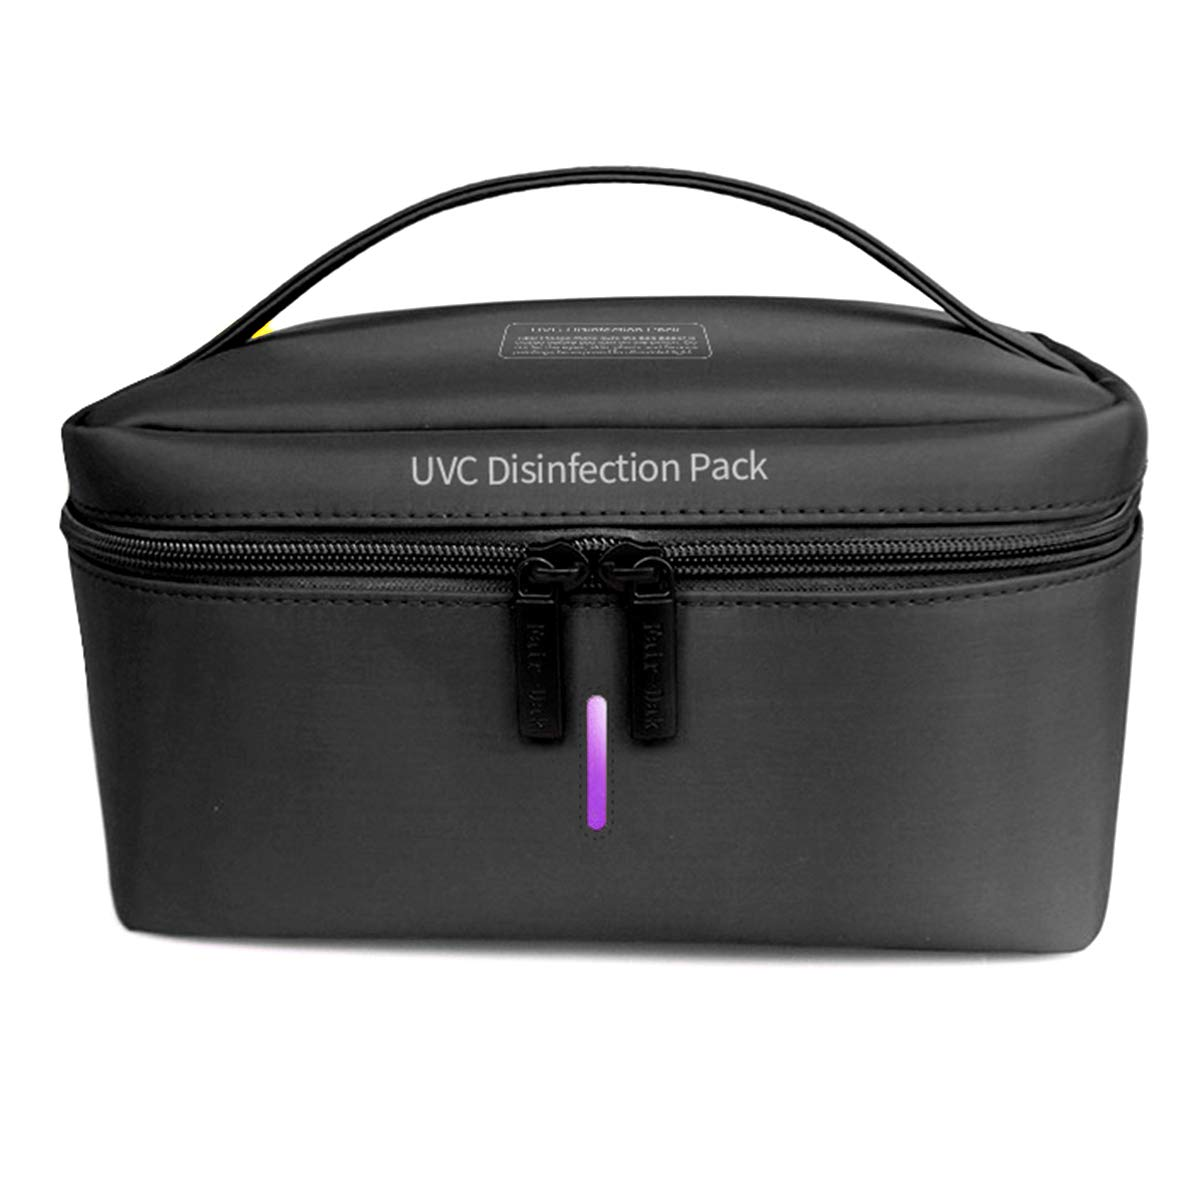 Portable UV Sterilization Pack Disinfection Bags USB Charged Sterilize Cleaner Box for Baby Clothes,Underwear,Phone Bottle,Toothbrush,Beauty Tools